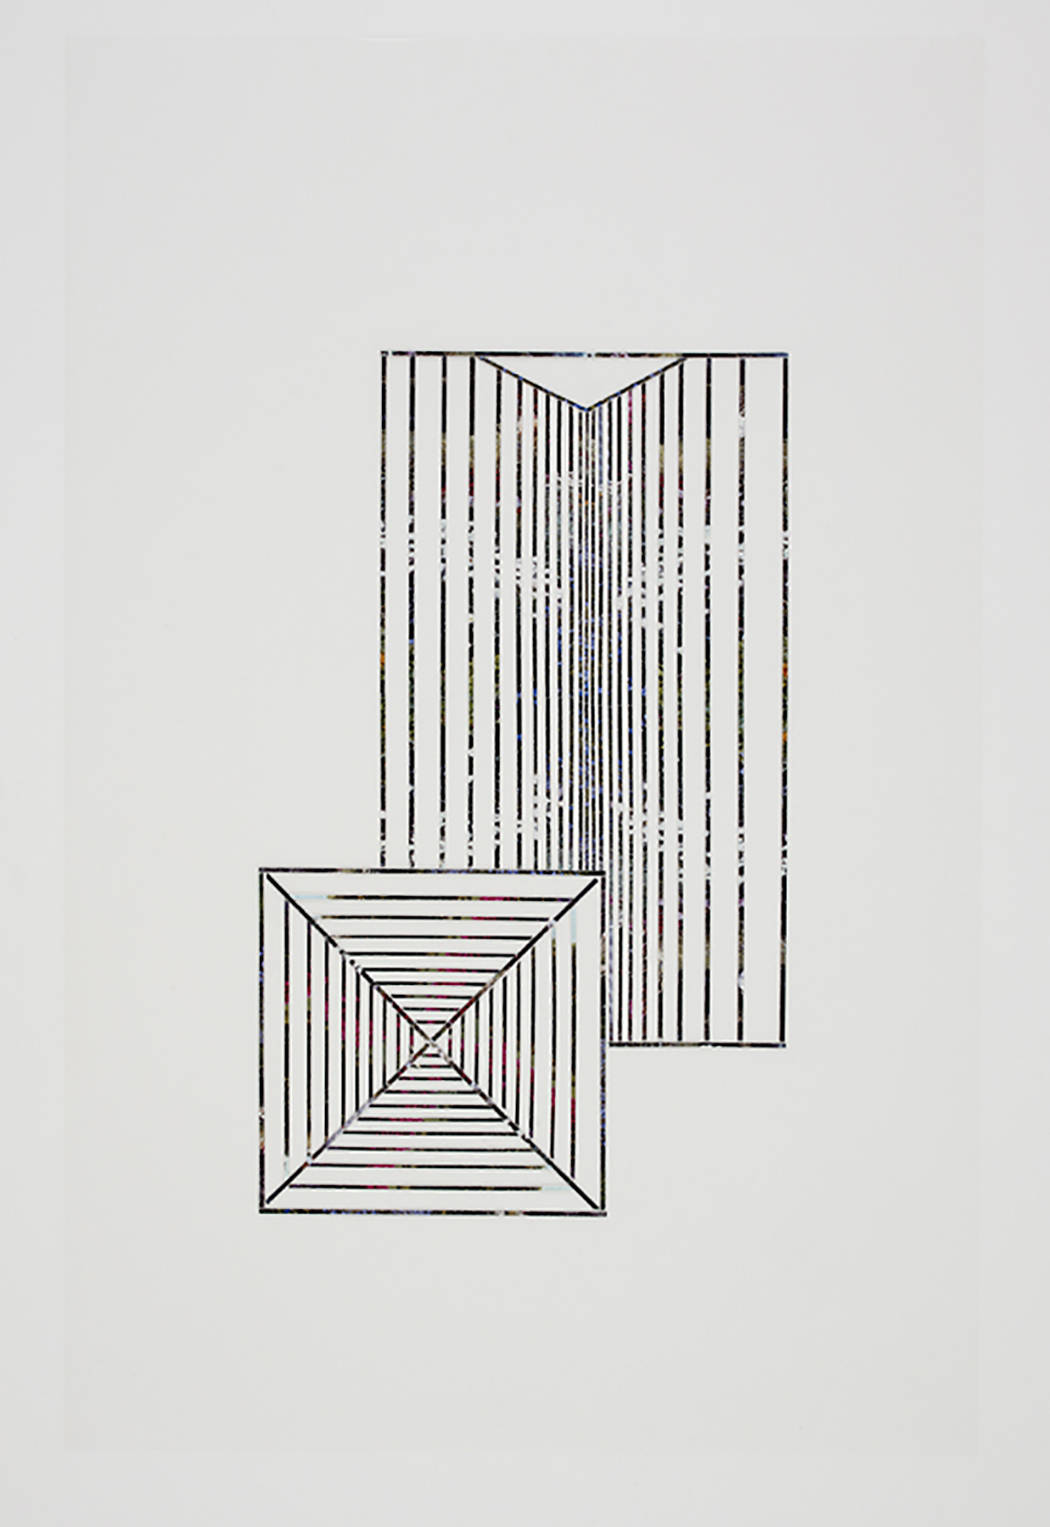 Roof #6, 2010, collage on drafting film paper, 34 x 22 inches/ 86 x 56 cm